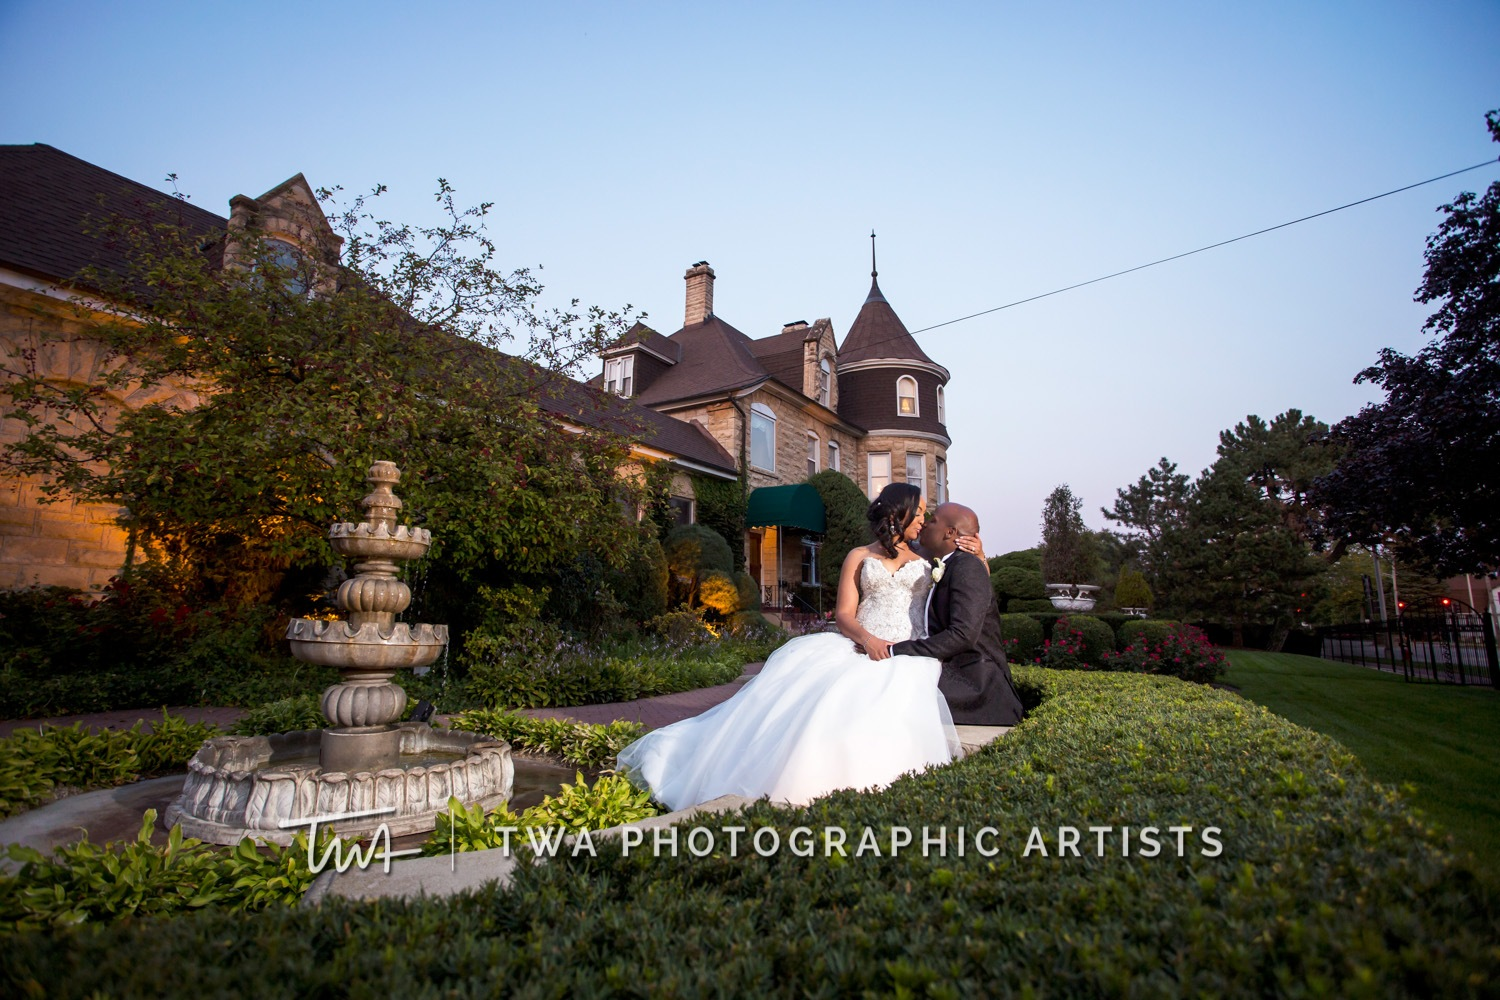 Chicago-Wedding-Photographer-TWA-Photographic-Artists-Haley-Mansion_Graves_Moffett_JM-034_0470